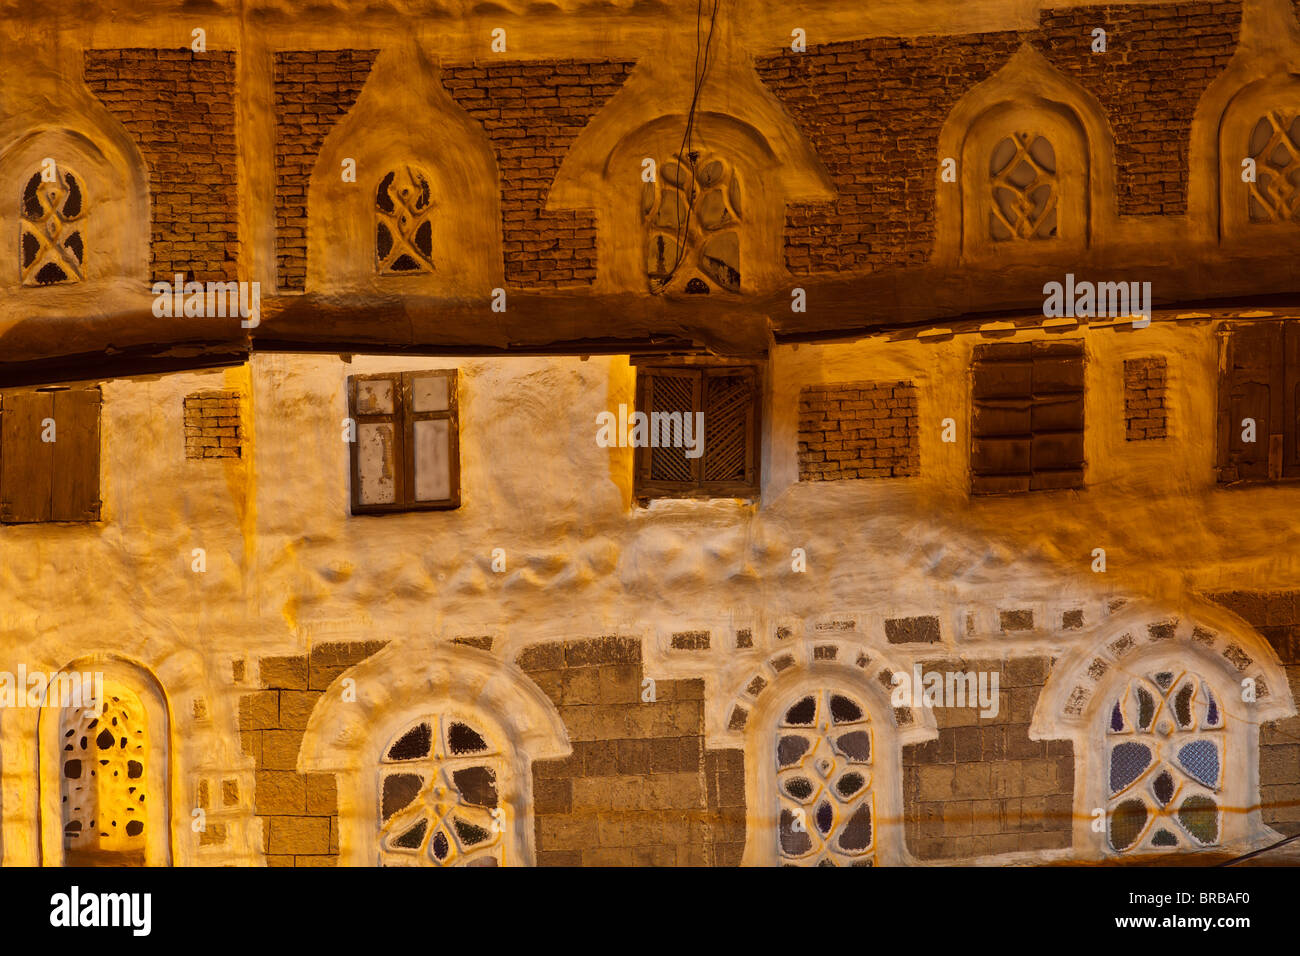 Detail of building in Old City of Sana'a, Yemen Stock Photo